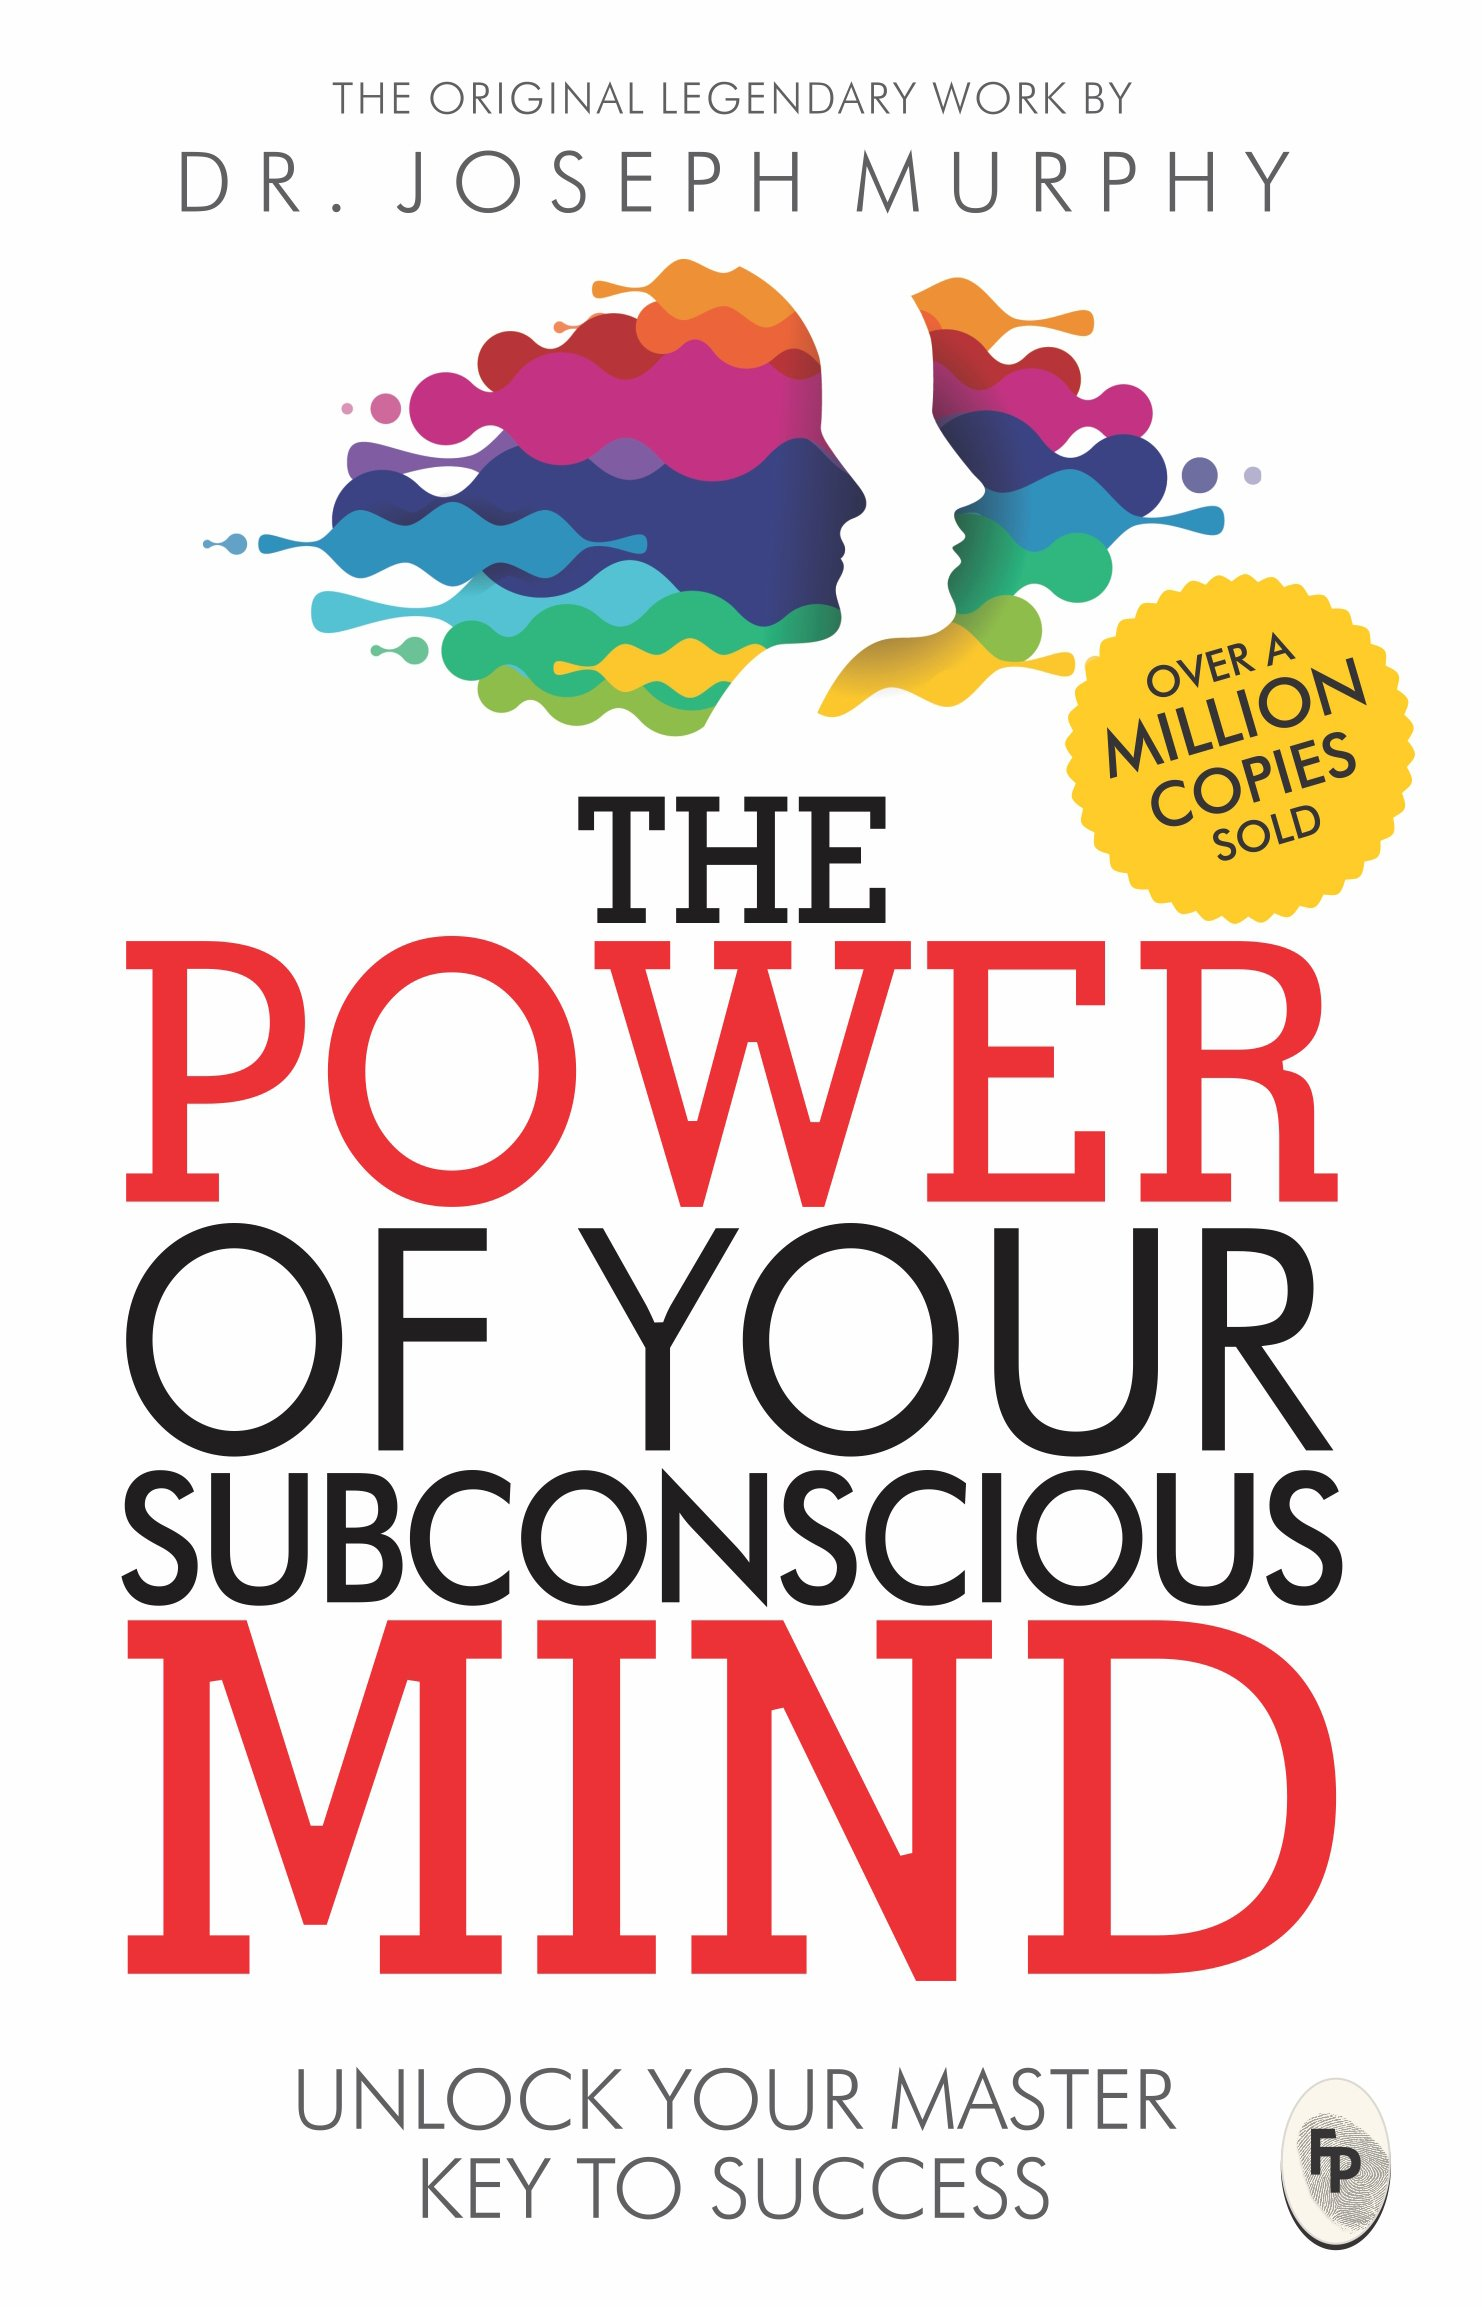 The Power of Your Subconscious Mind by Joseph Murphy PhD D.D.